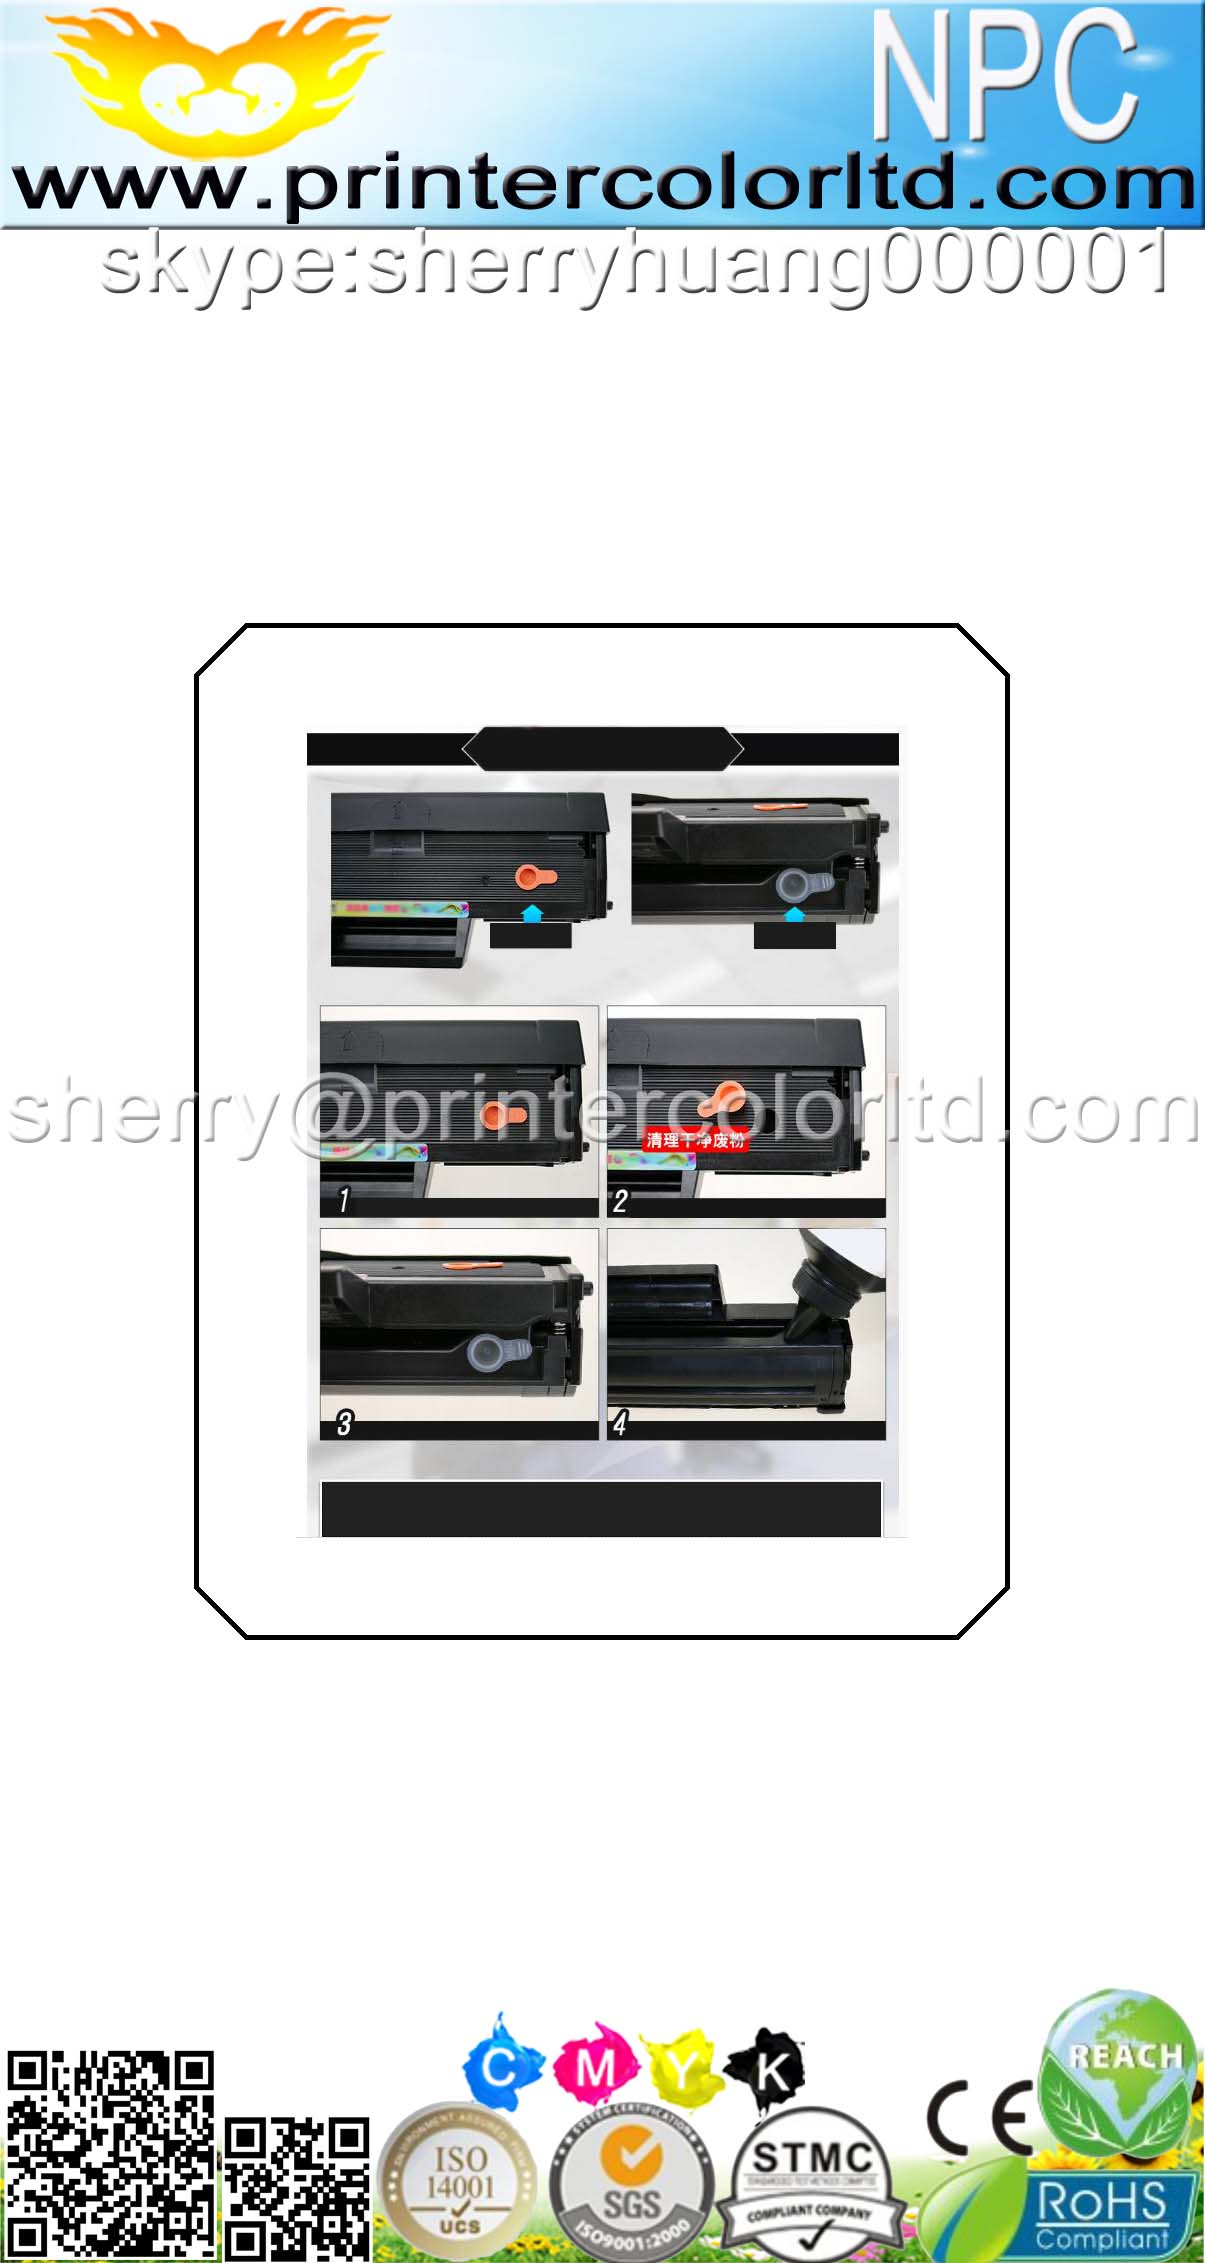 Compatible 101 Toner, for SCX-3401, MLT-D101S Toner Cartridge for Samsung ML-2161/ML-2166W, SCX-3405